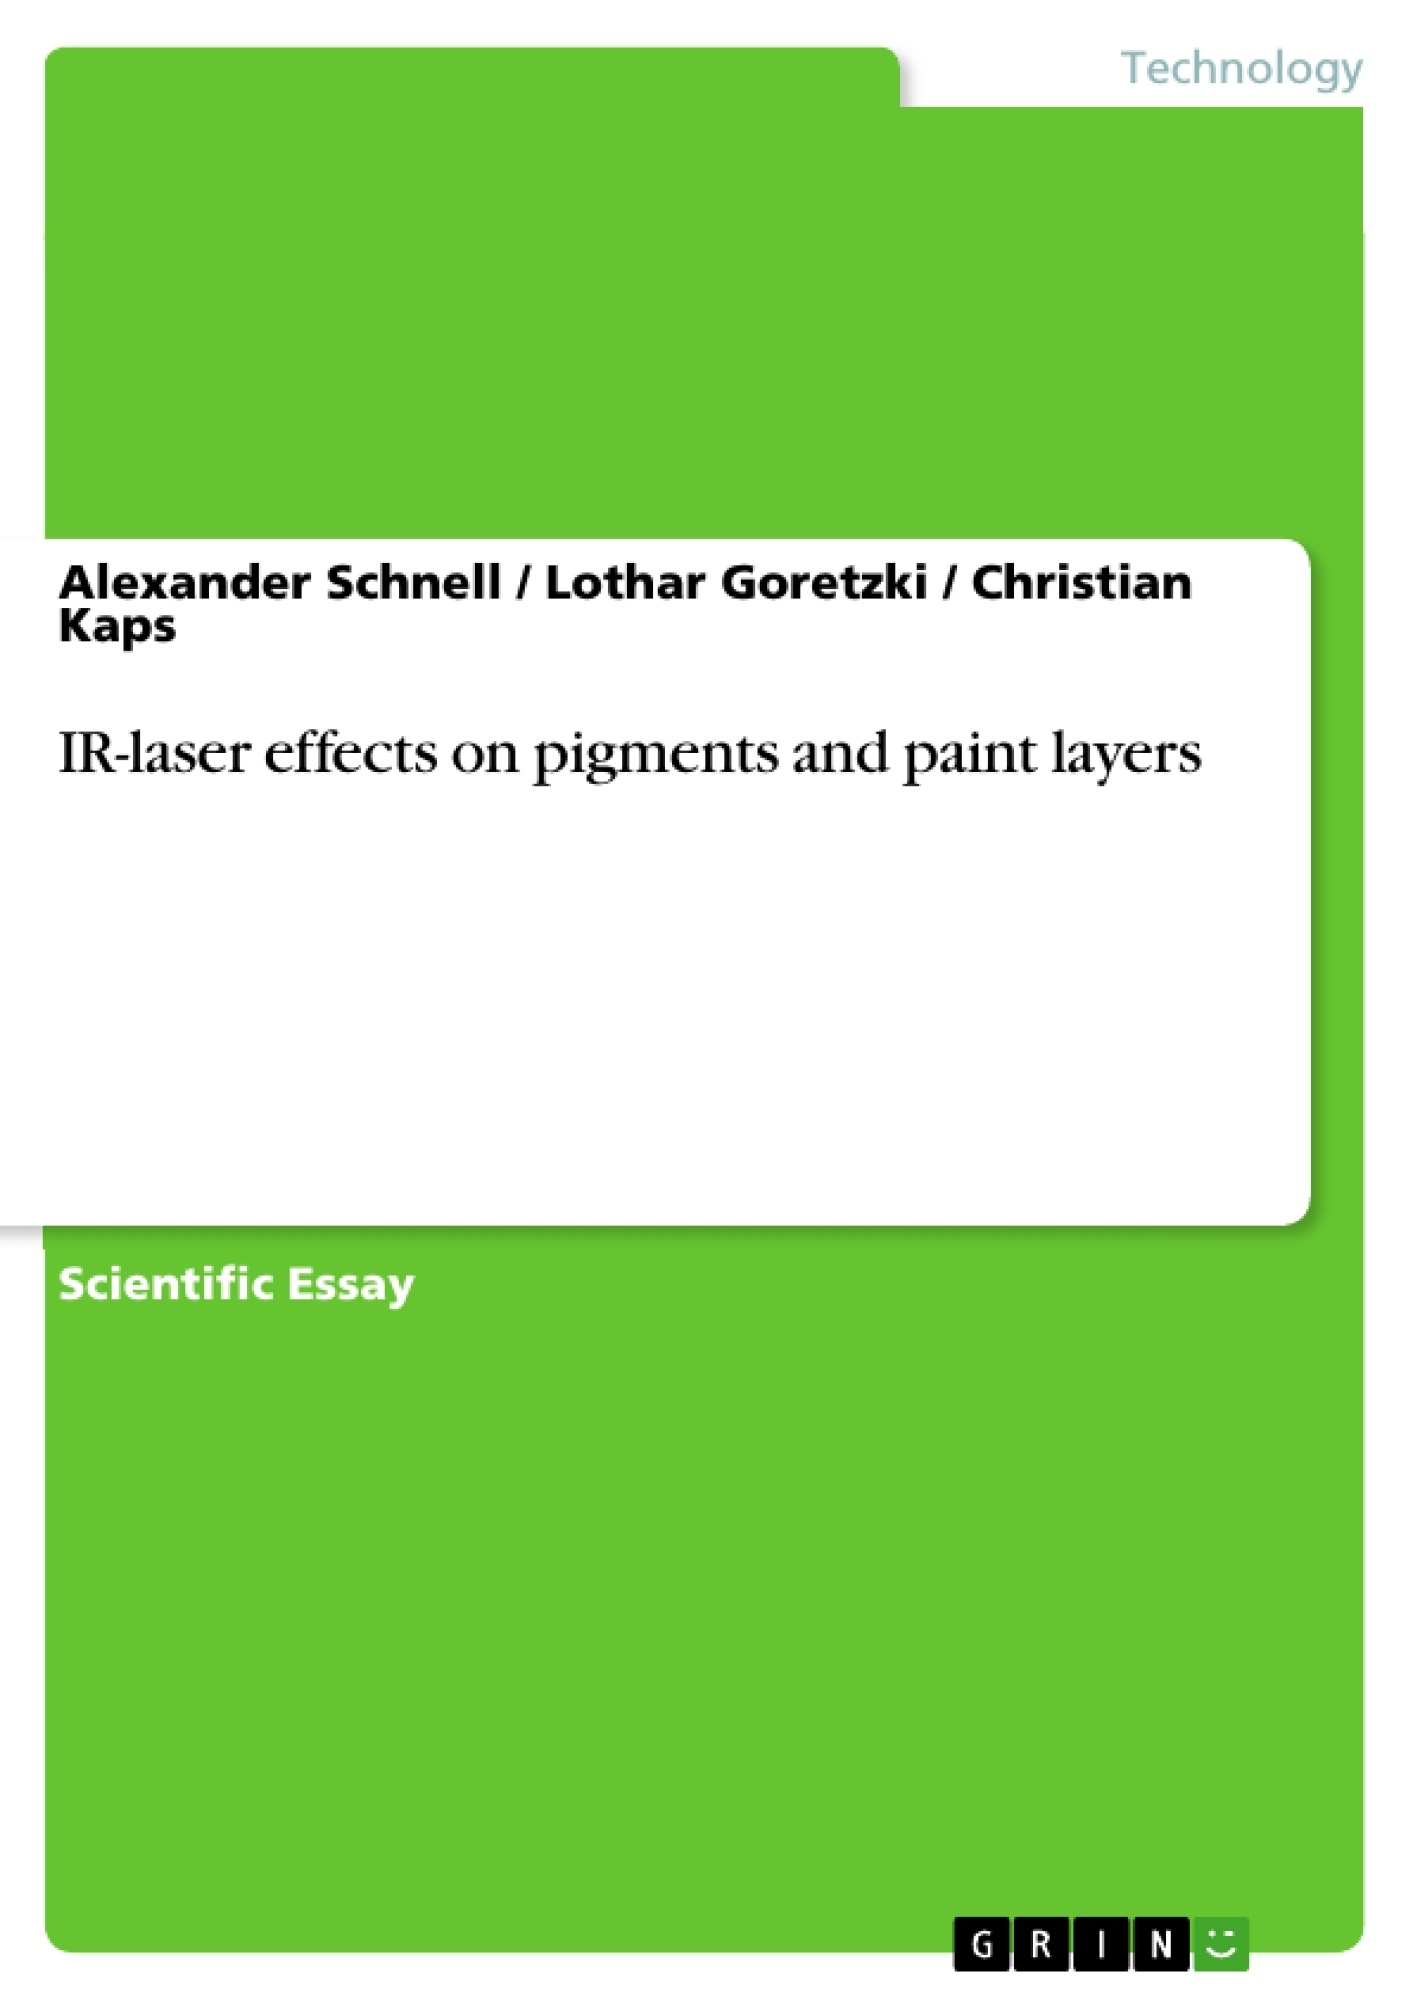 Title: IR-laser effects on pigments and paint layers